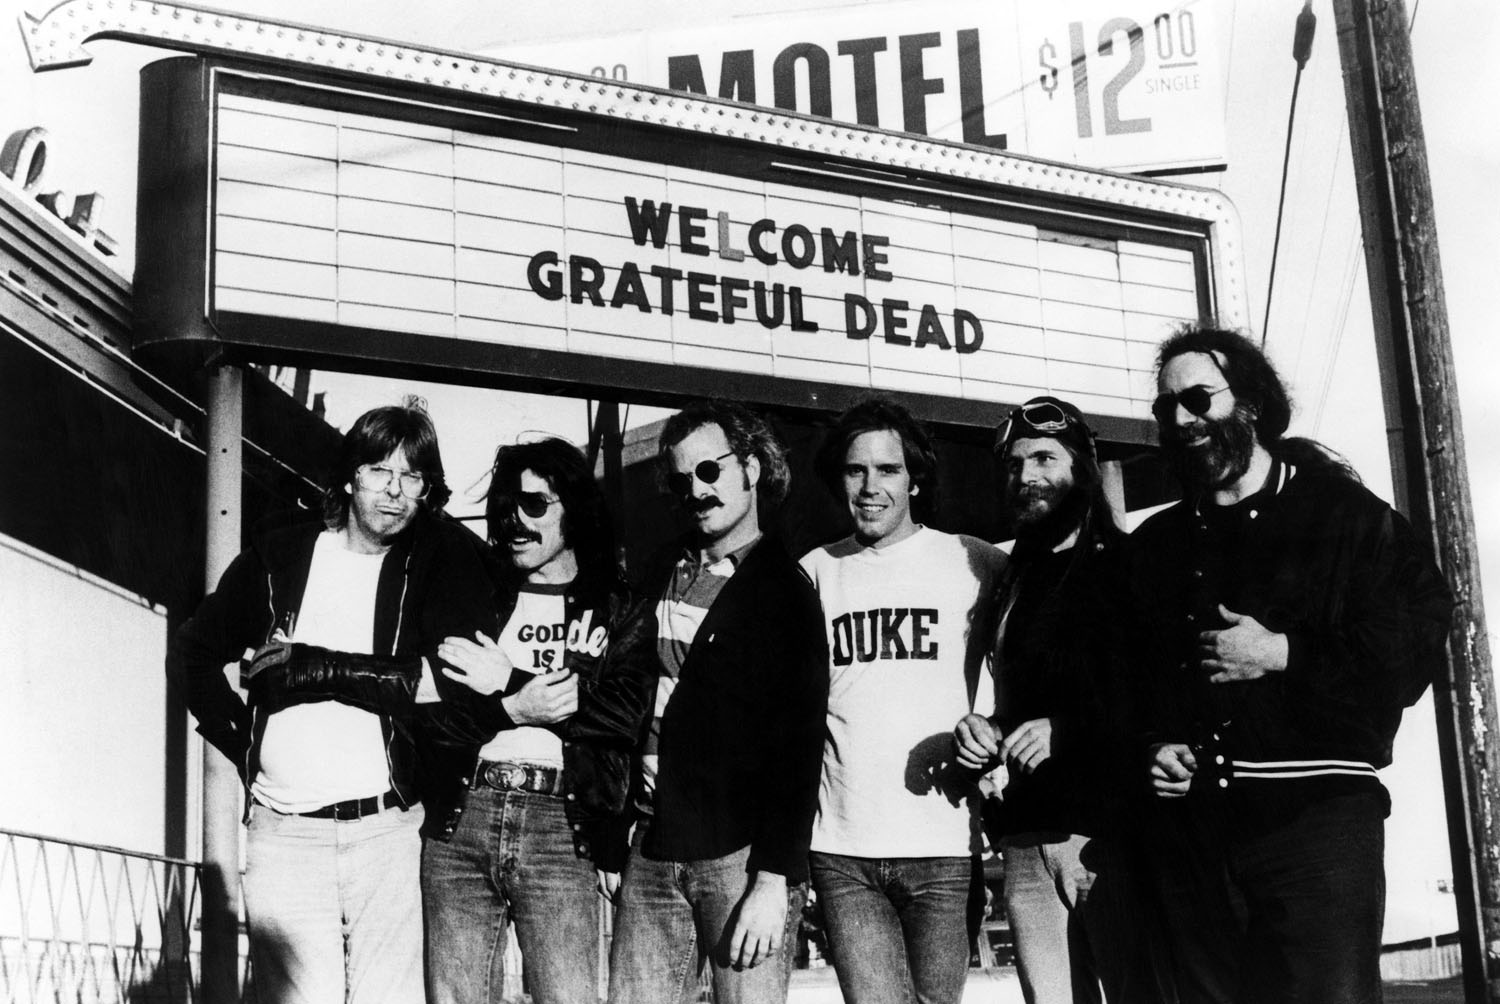 an introduction to the life of mickey hart a drummer for the grateful dead Grateful dead's drummer mickey hart: the brain is rhythm central october 9, 2012 for mickey hart, passion brings purpose i like it when.